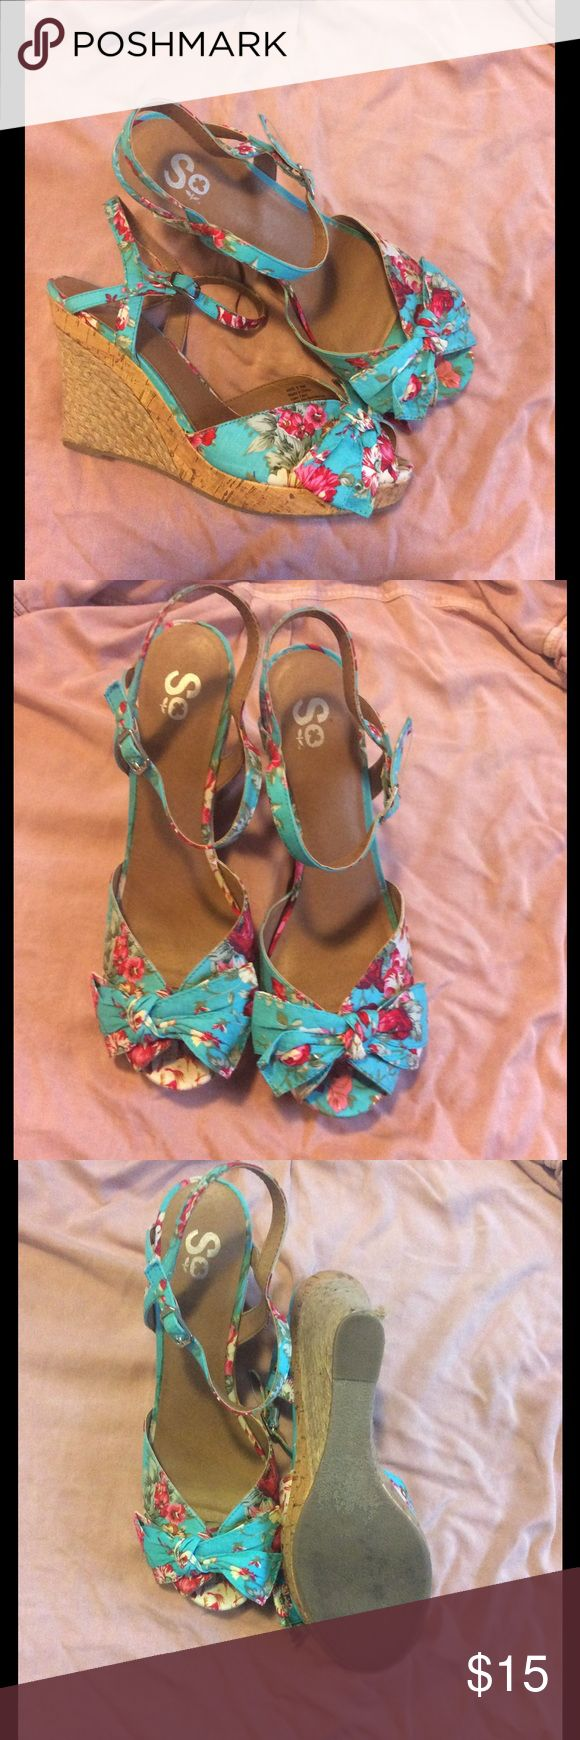 Floral wedges Super cute spring/summer shoes! Worn once. Floral design with bow detail On SALE Shoes Wedges